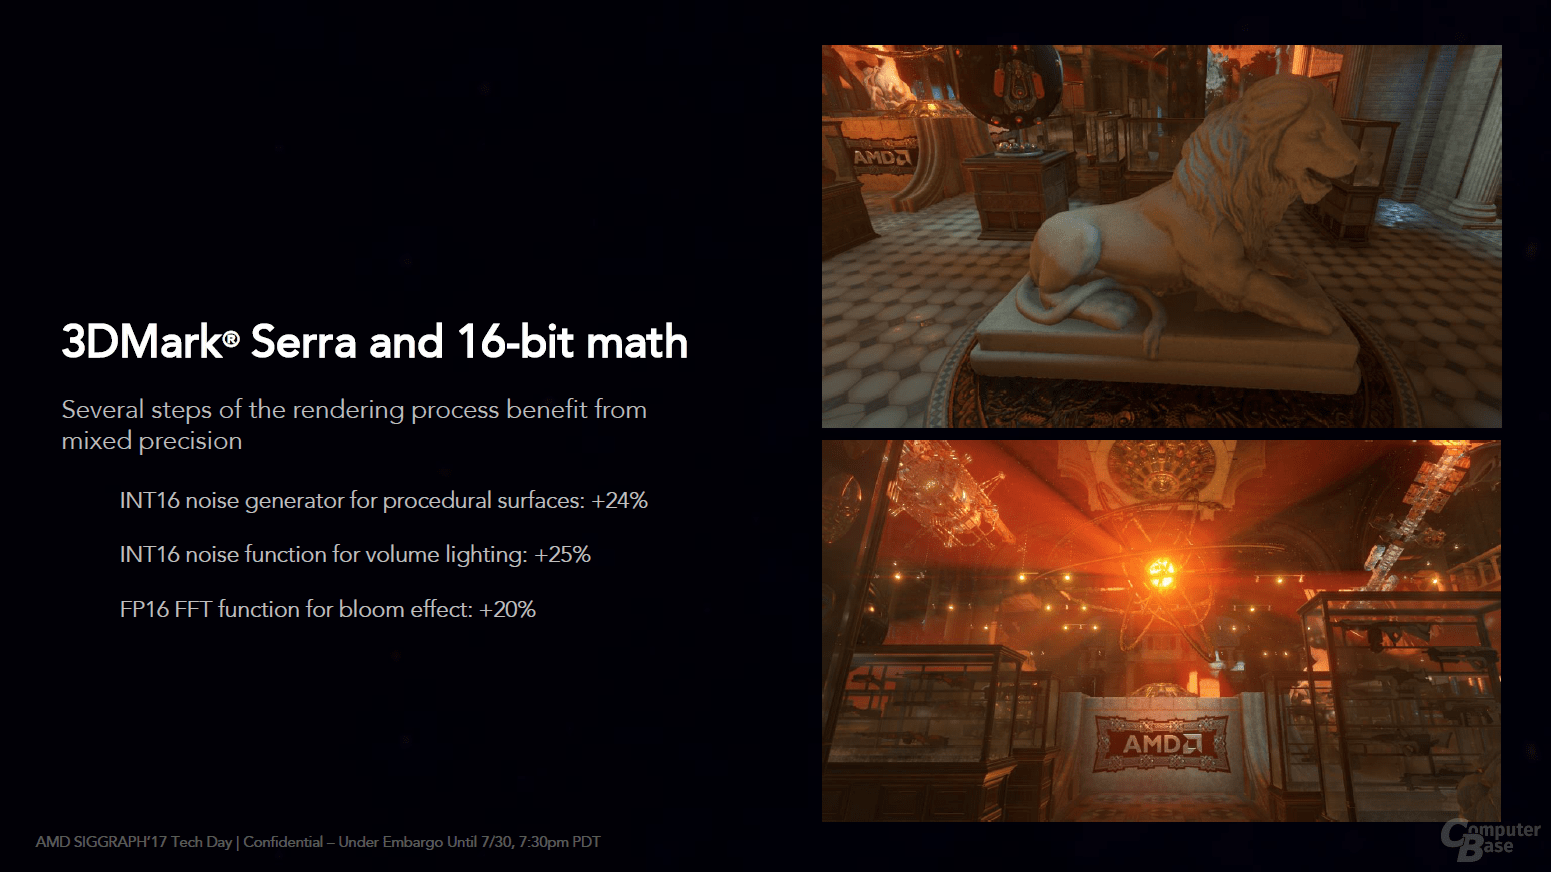 Der 3DMark mit Rapid Packed Math